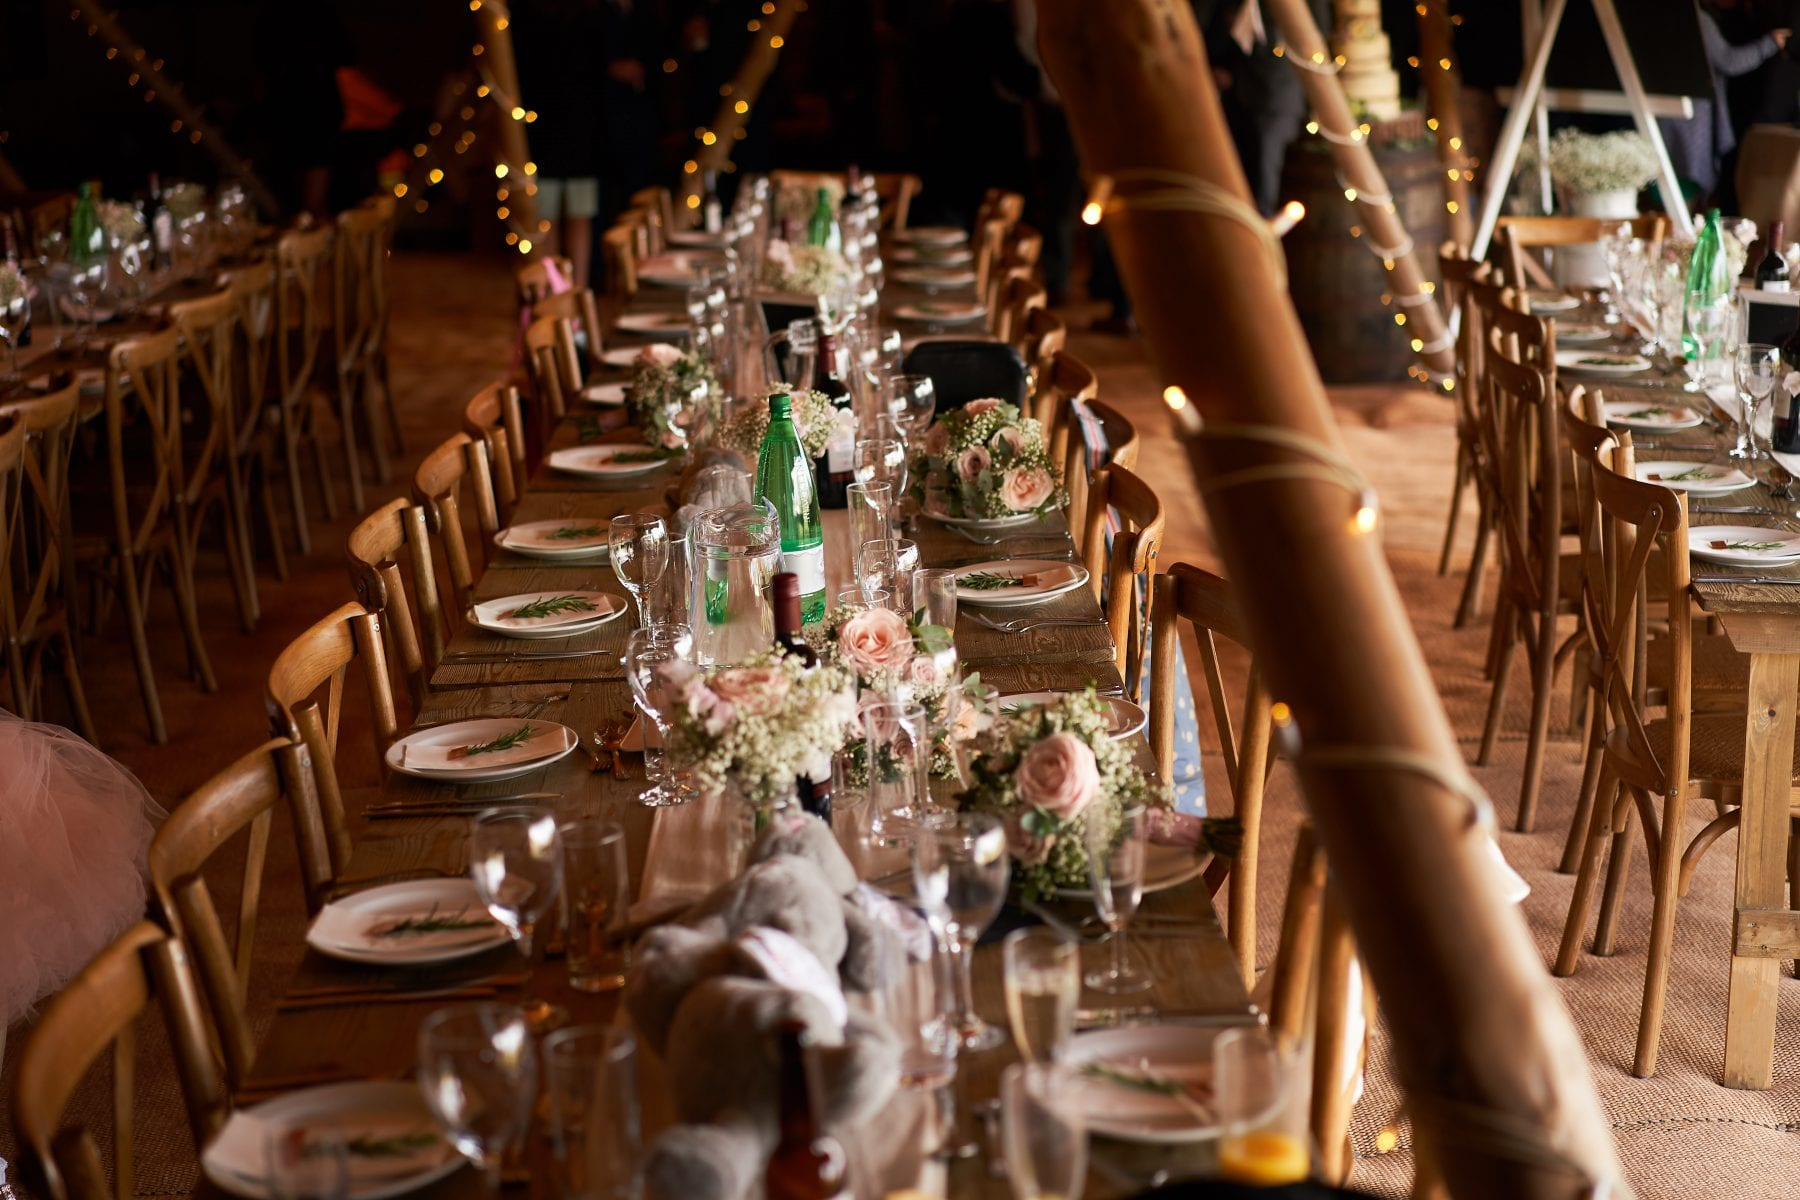 Our wedding event catering - The Ultimate 2021 Guide